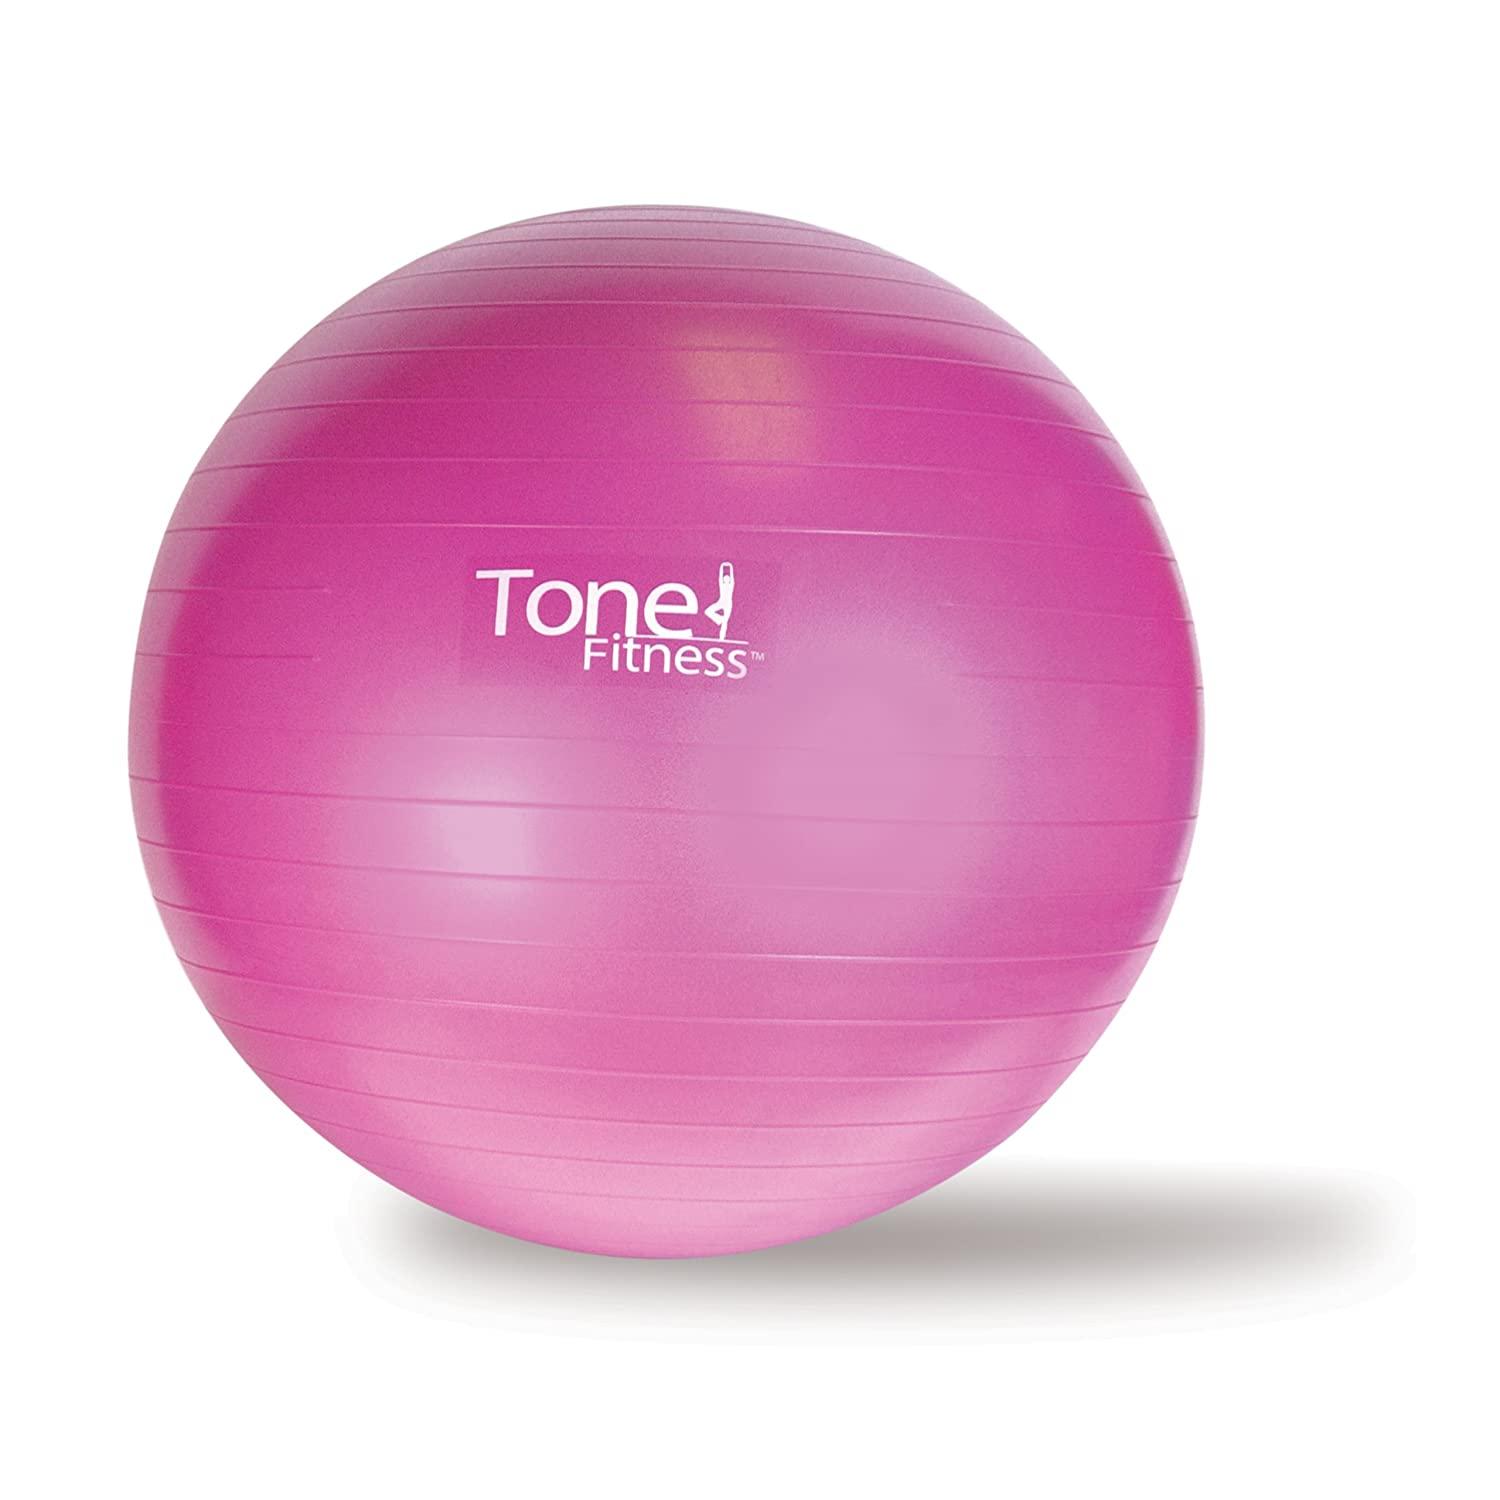 Tone Fitness AntiBurst Stability Ball Yoga Exercise Gym Home Workout 55 or 65cm | eBay